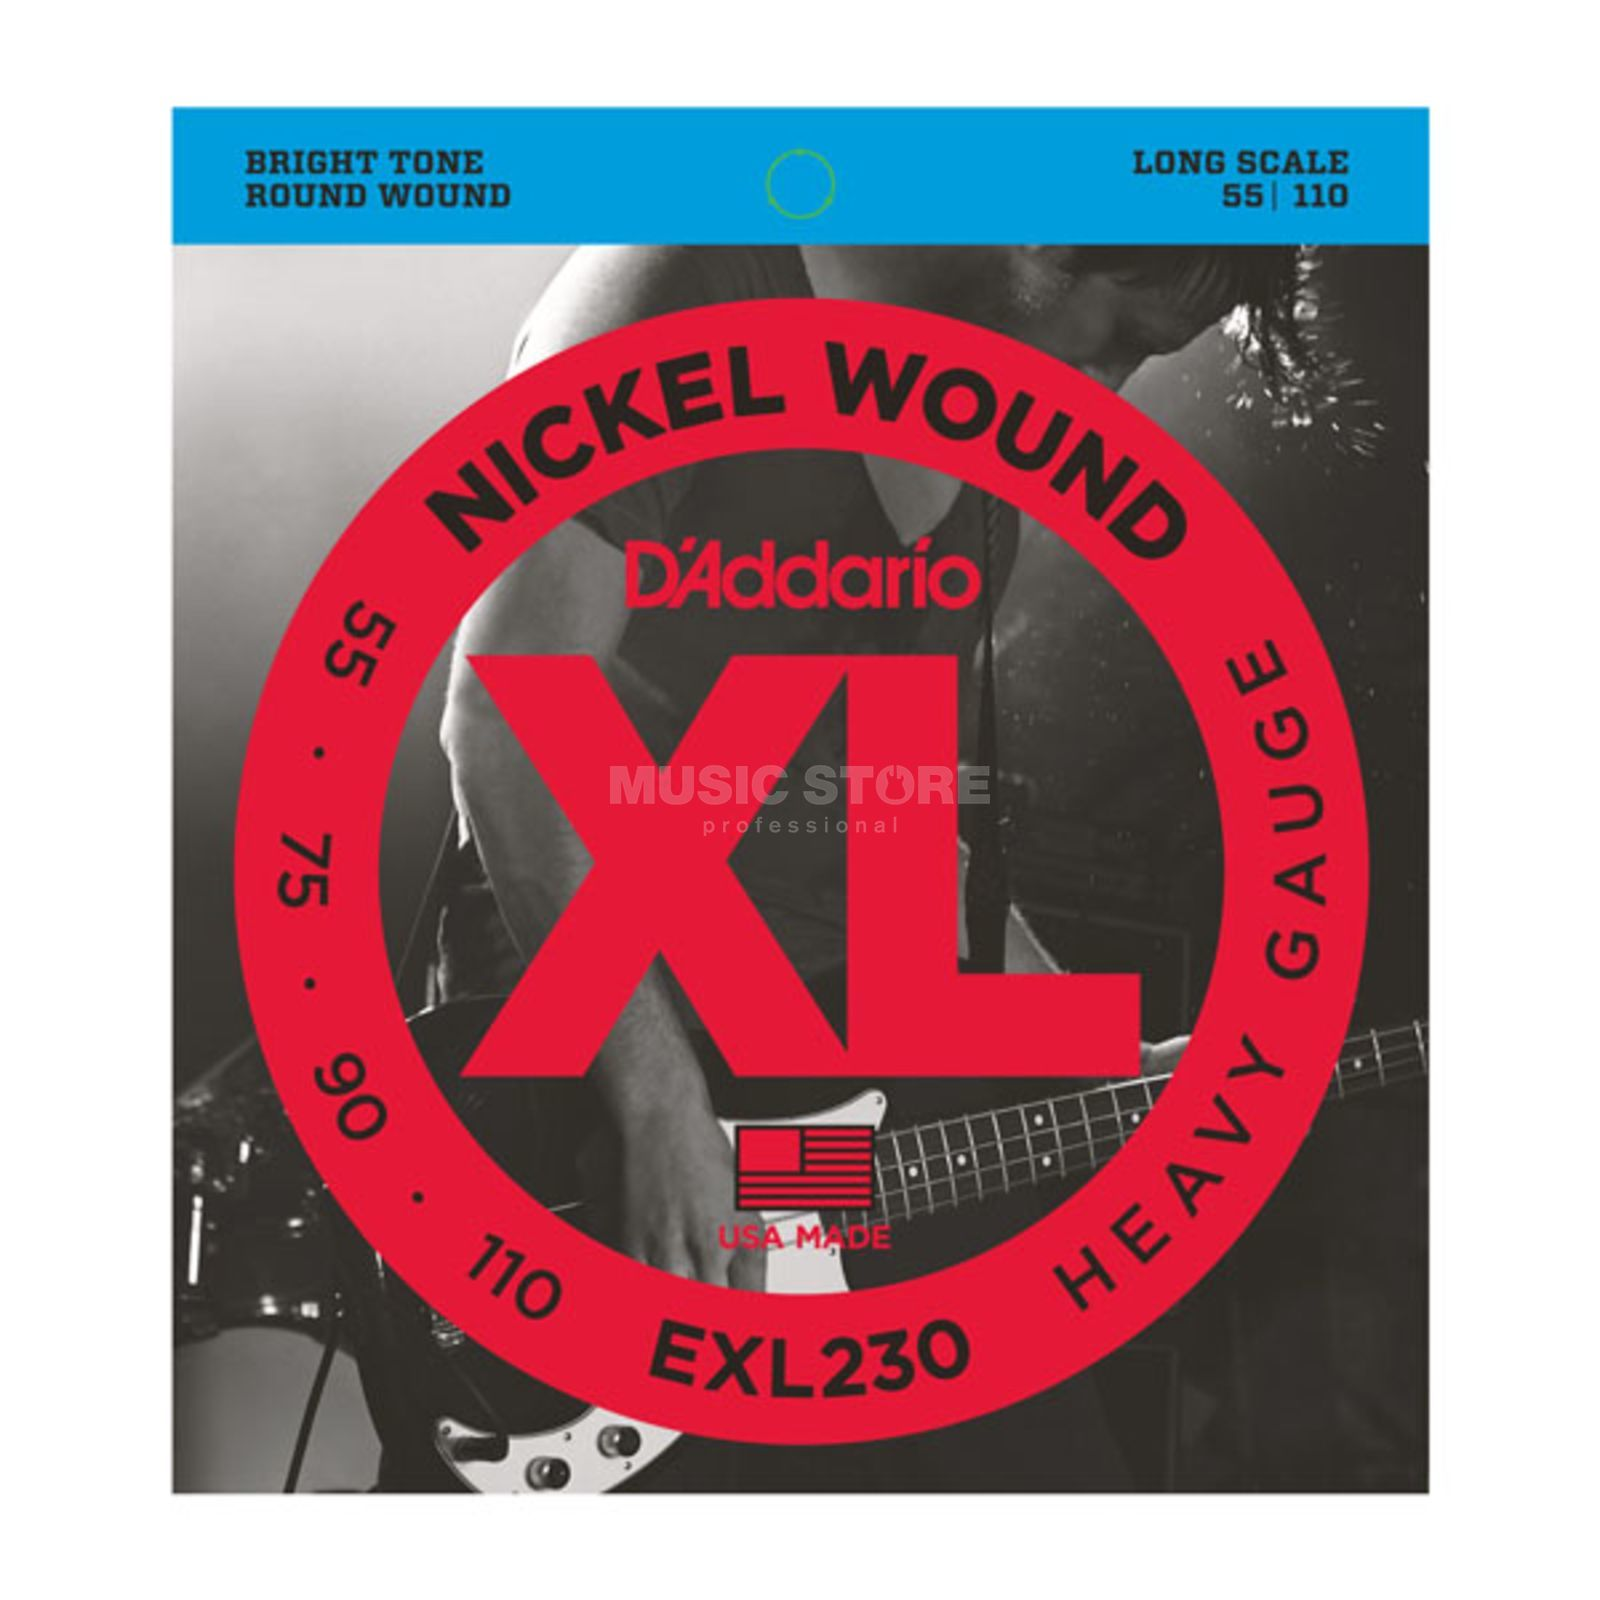 D'Addario Bass Strings XL Nickel 55-110 55-75-90-110, EXL230 Product Image